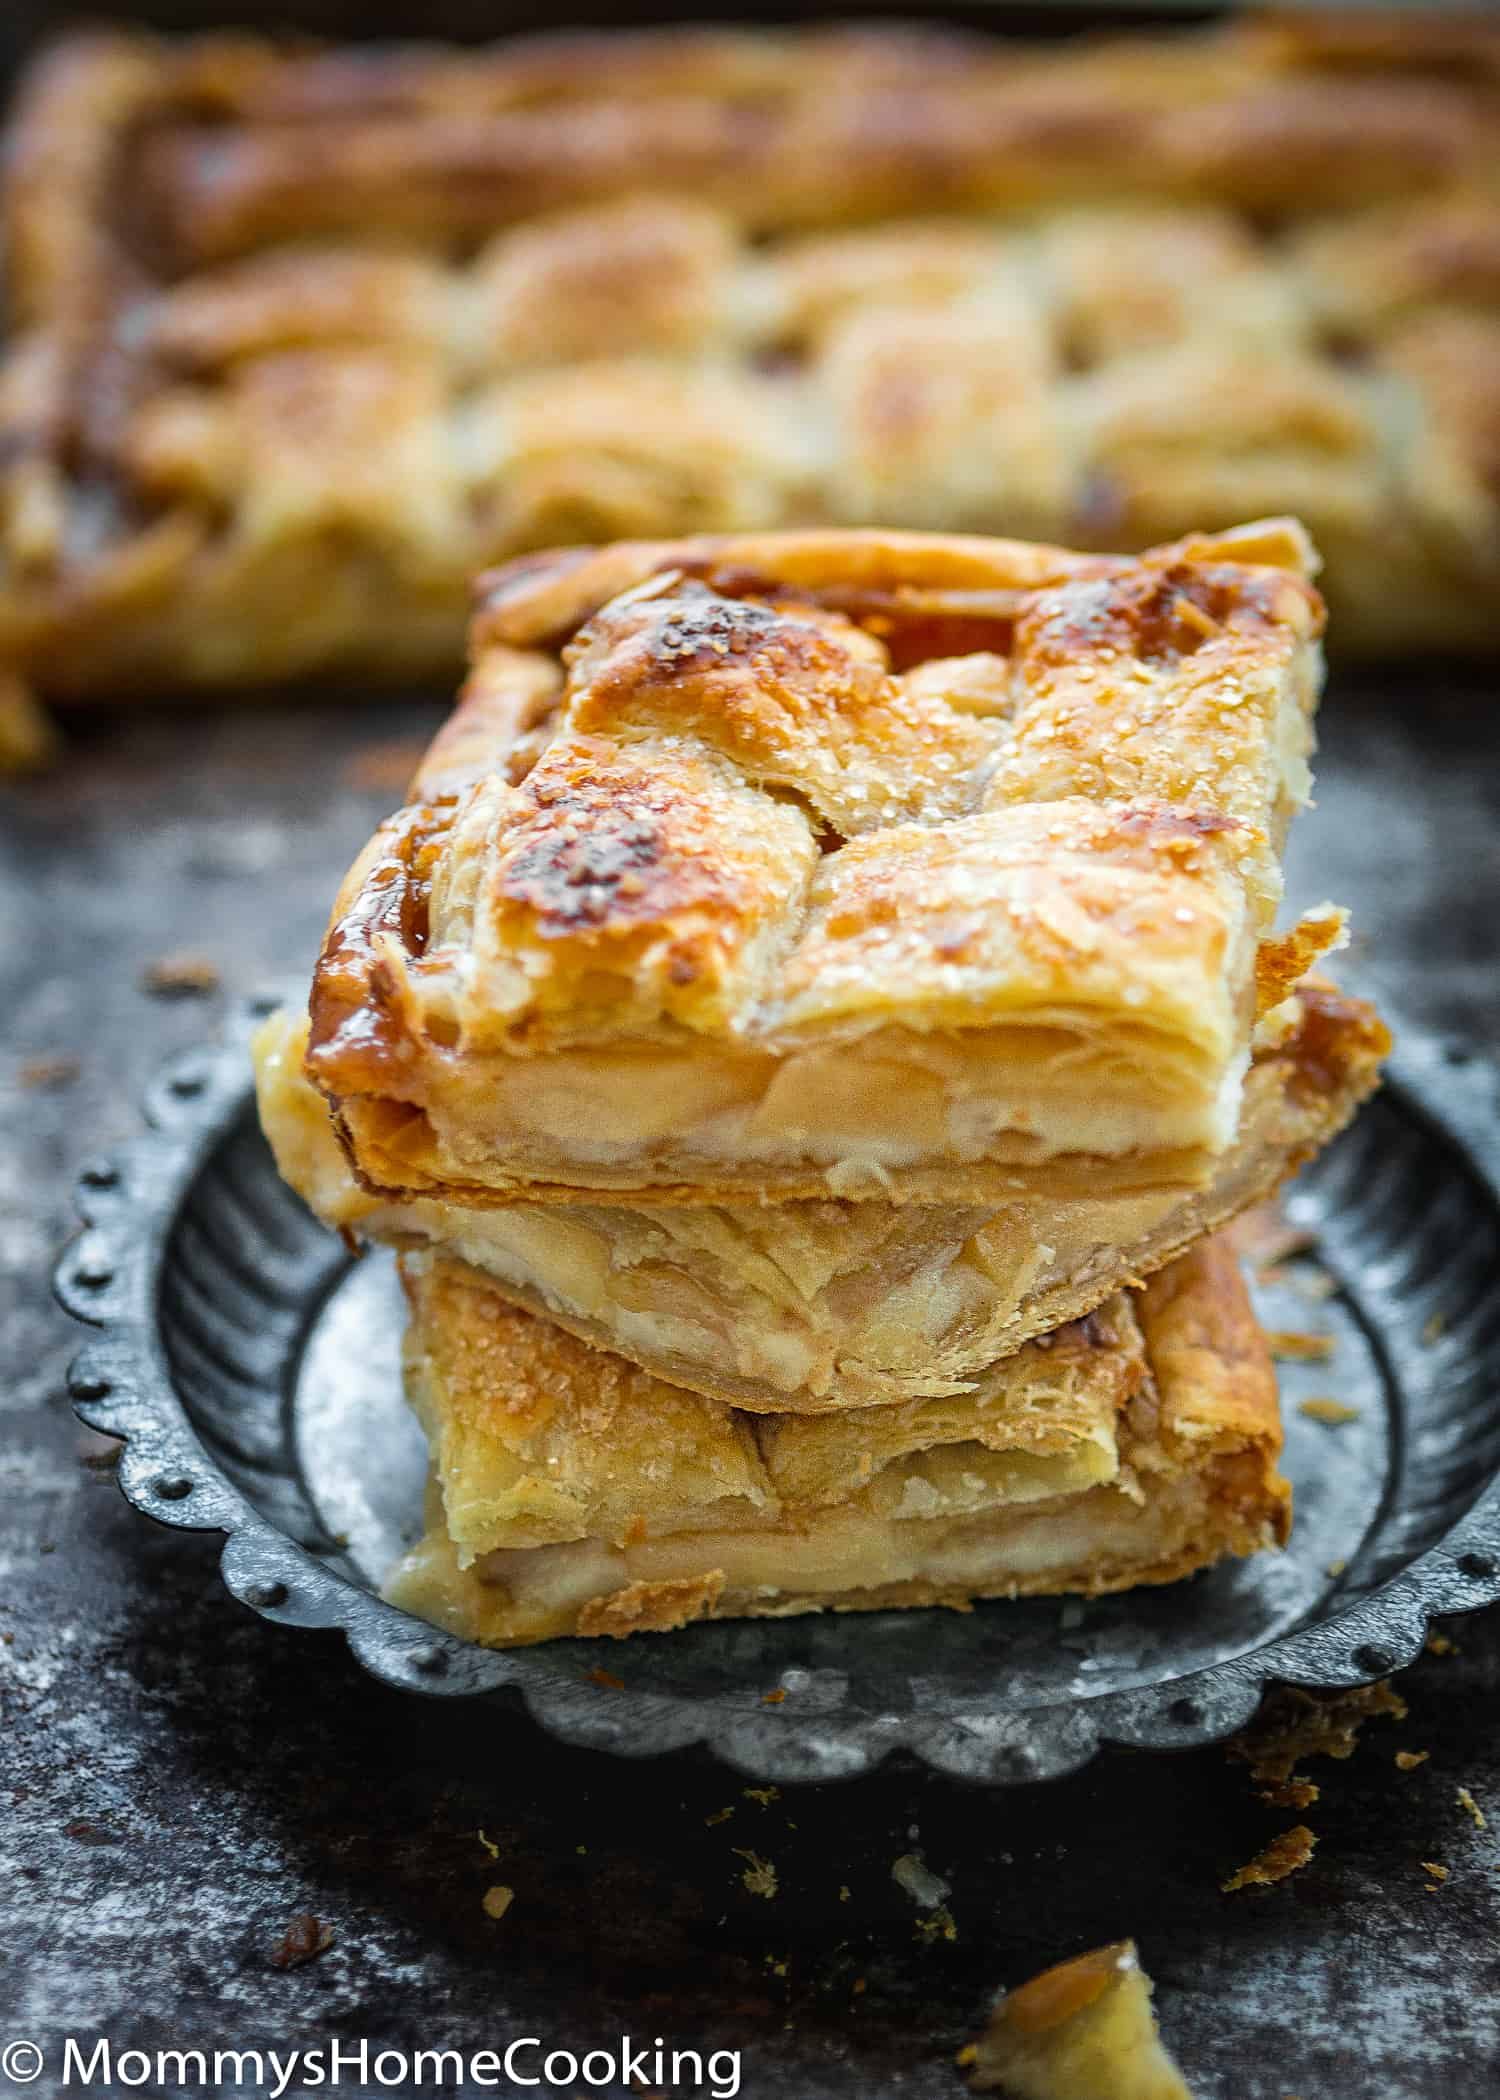 This Eggless Salted Caramel Apple Cheese Danish is the perfect way to enjoy one of the best gifts of the fall season, Apples!!! Made with store-bought puff pastry, this easy dessert is super delish and makes a nice change from the usual apple pie.  https://mommyshomecooking.com